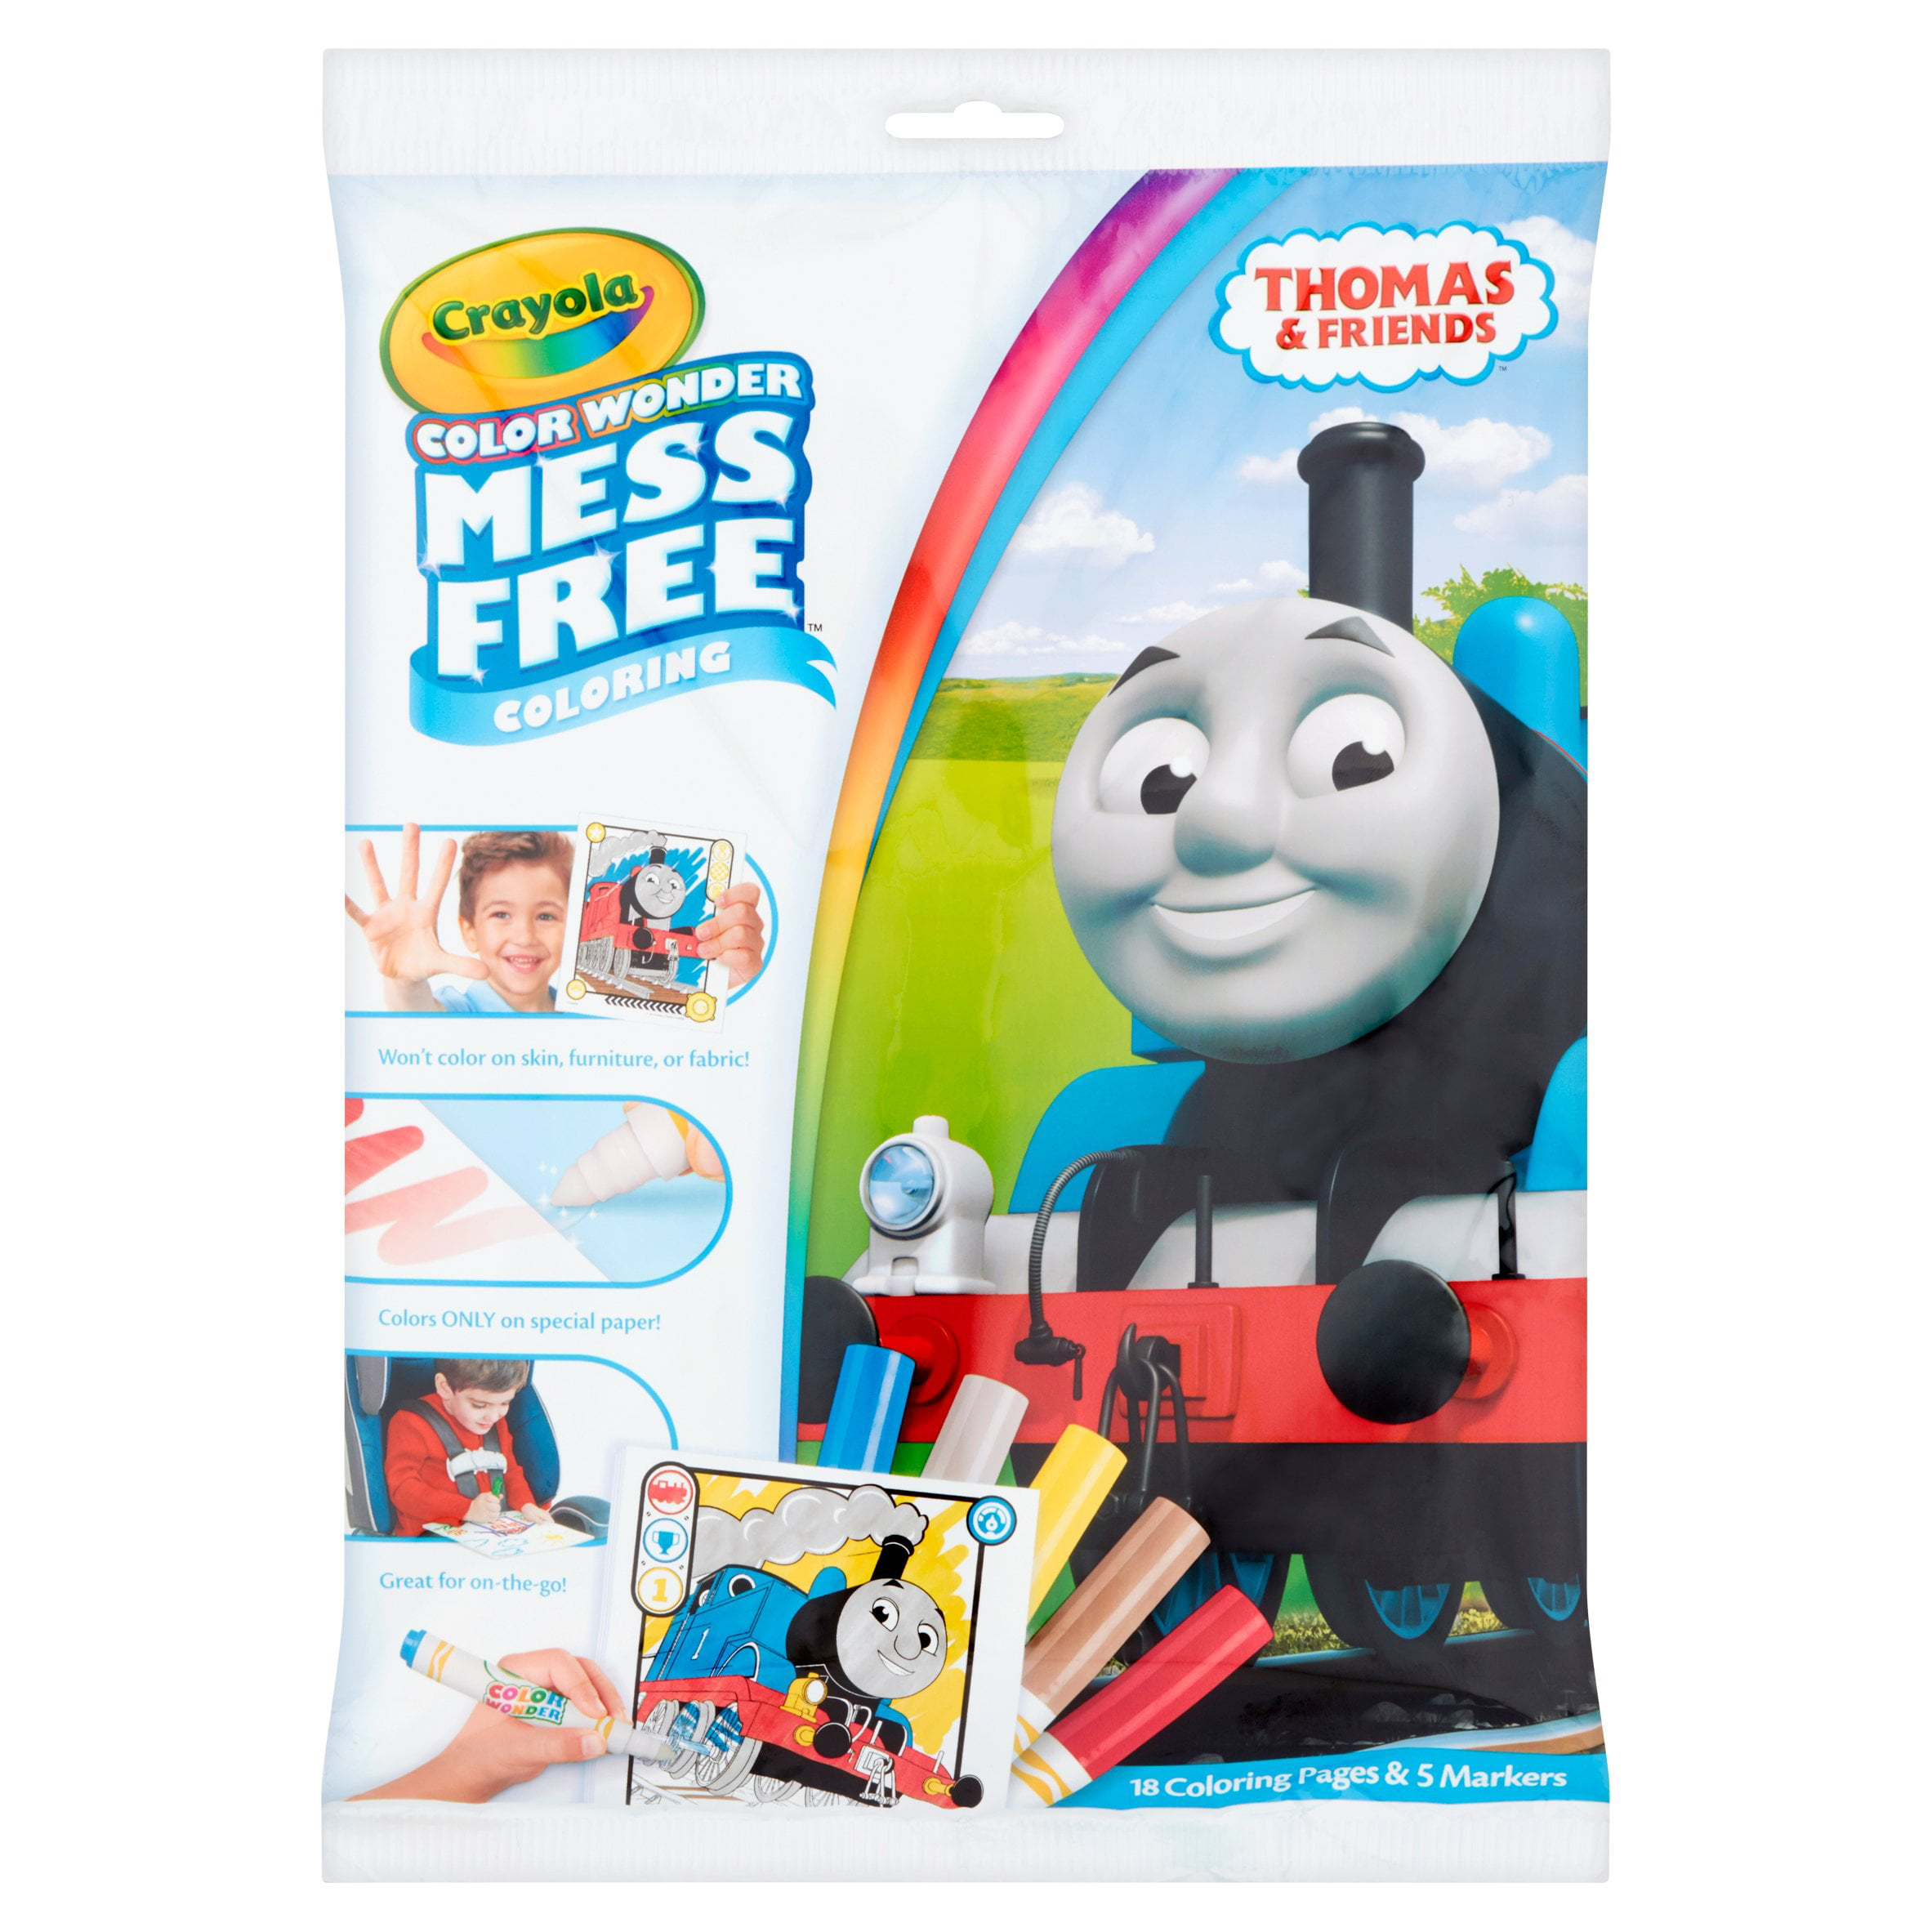 Crayola Color Wonder Coloring Book Set, Thomas the Train - Walmart.com